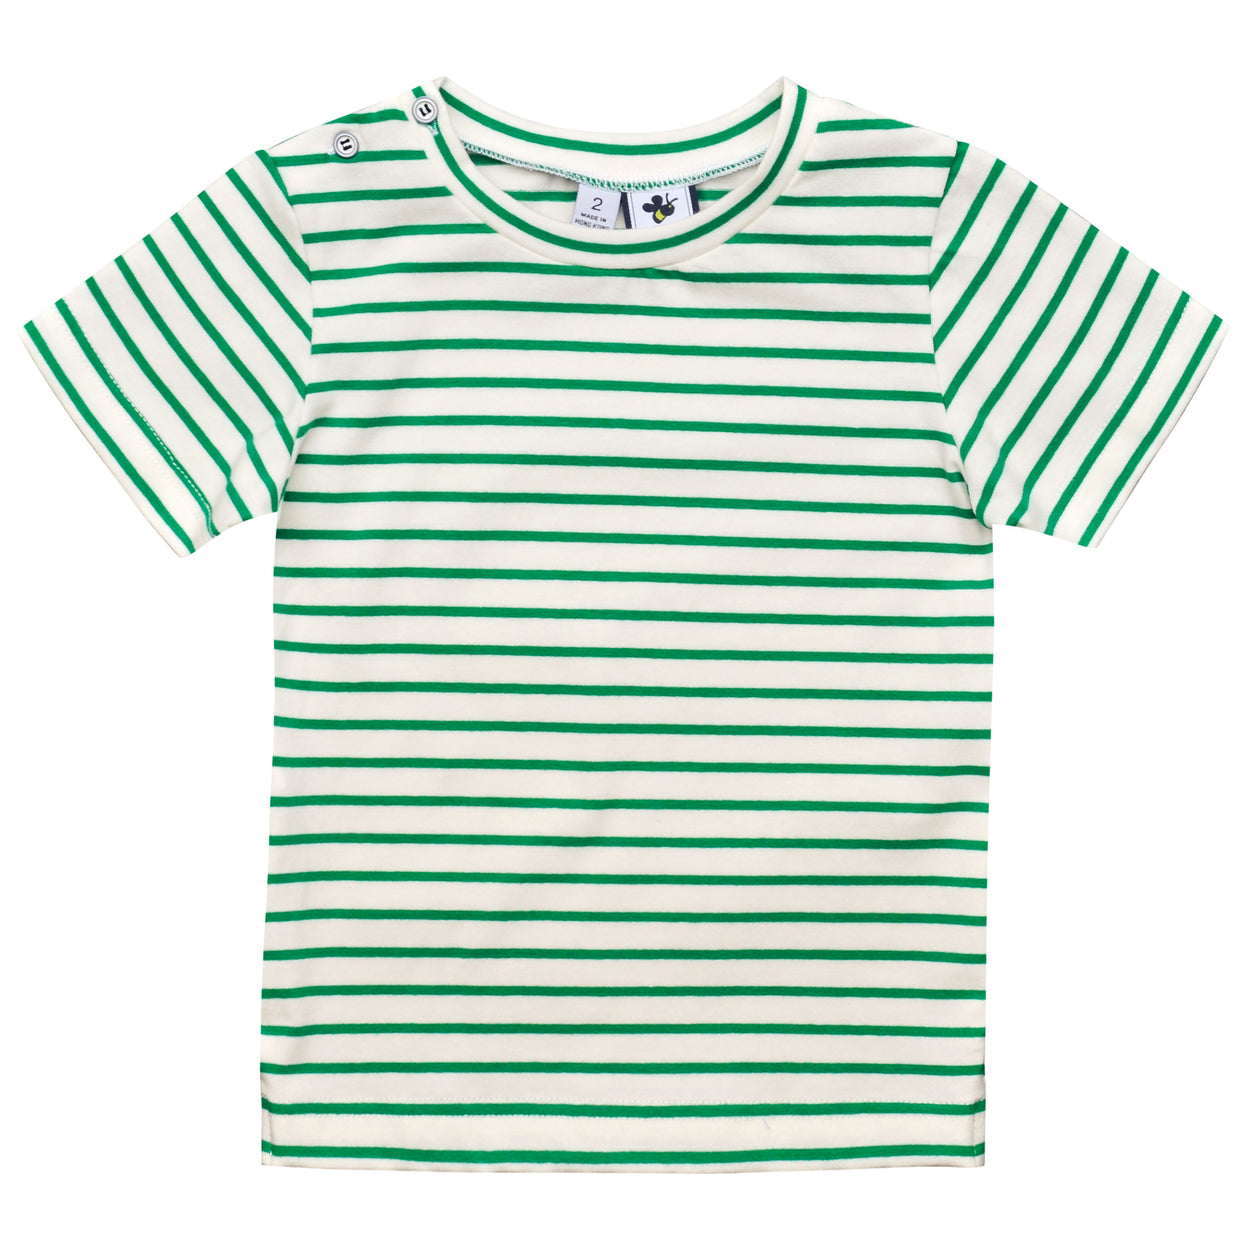 henry boys button shoulder tee green white stripe